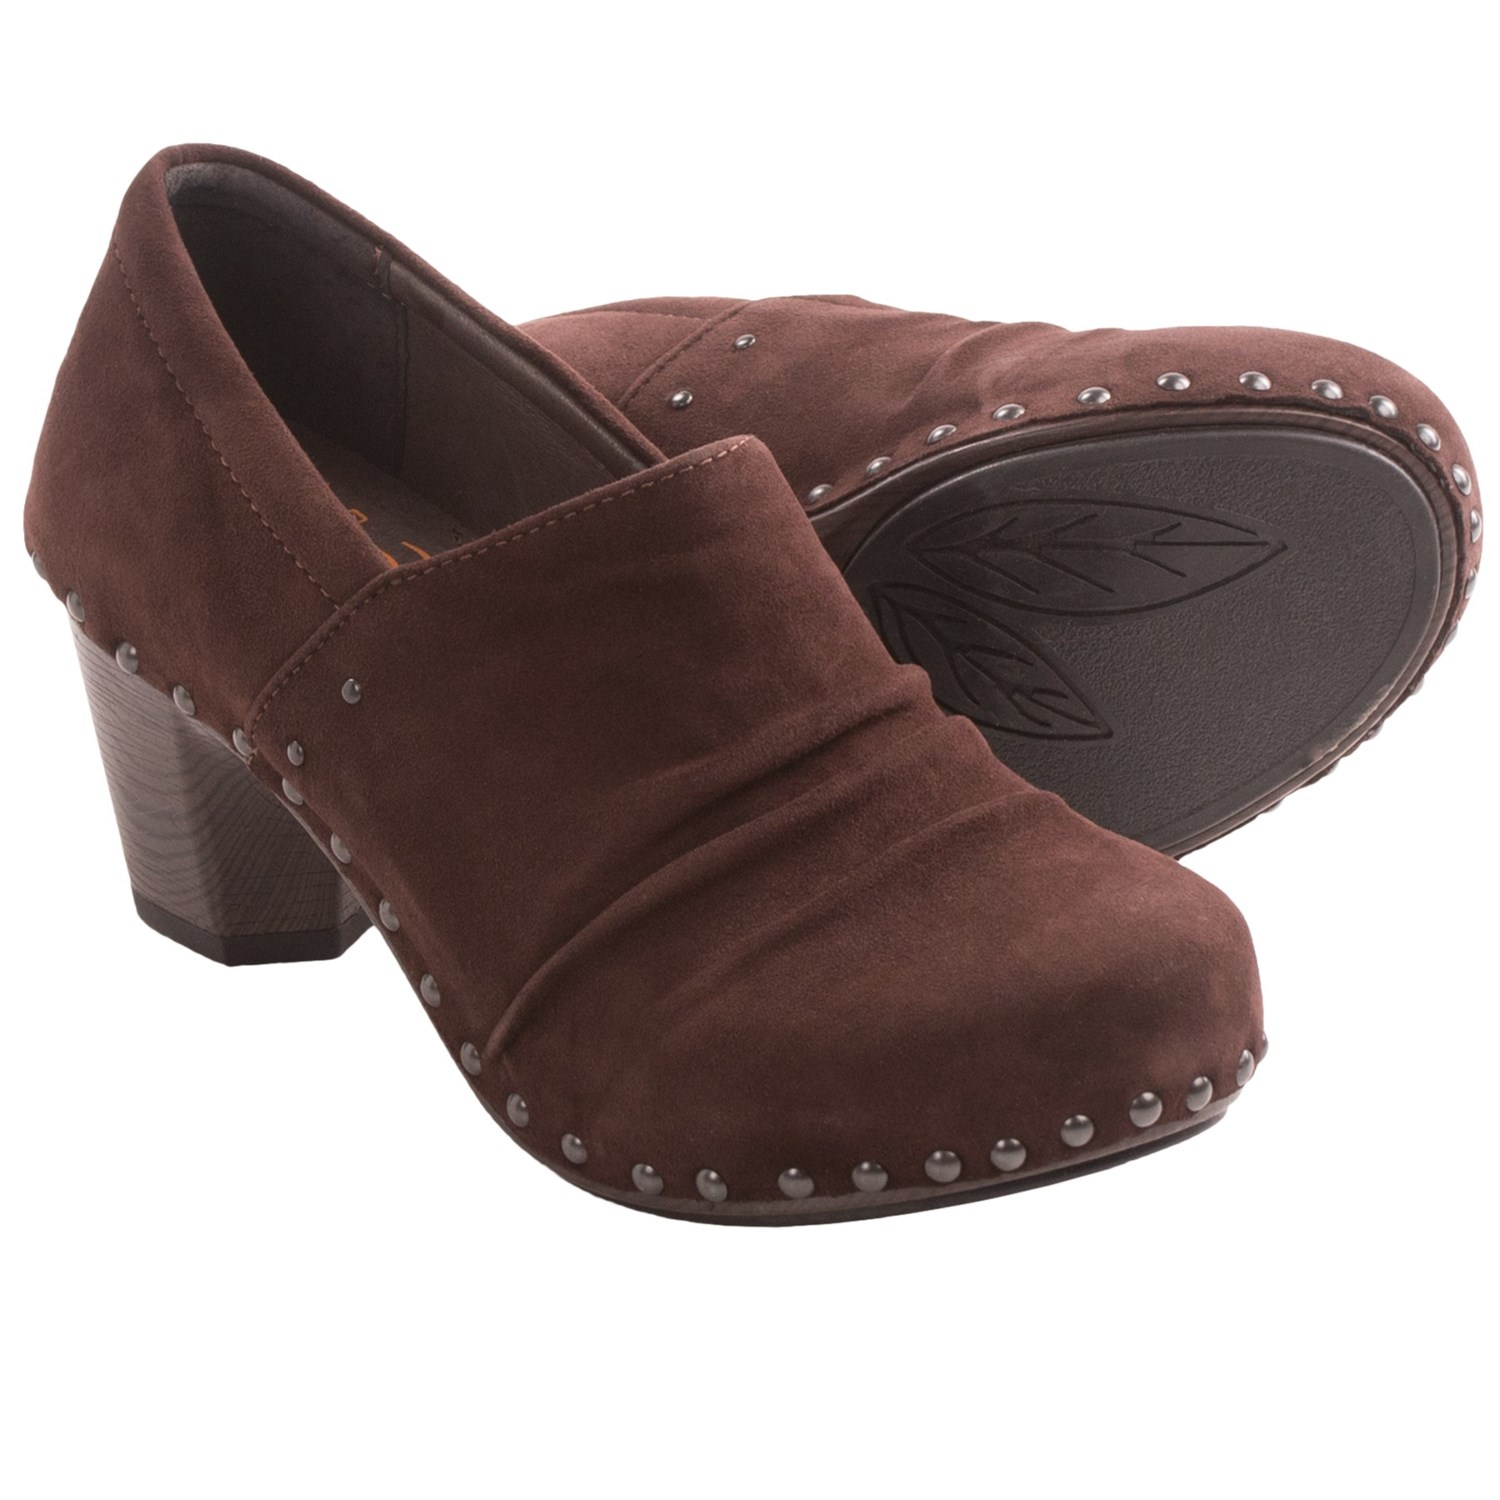 The Dansko Womens Shoes collection